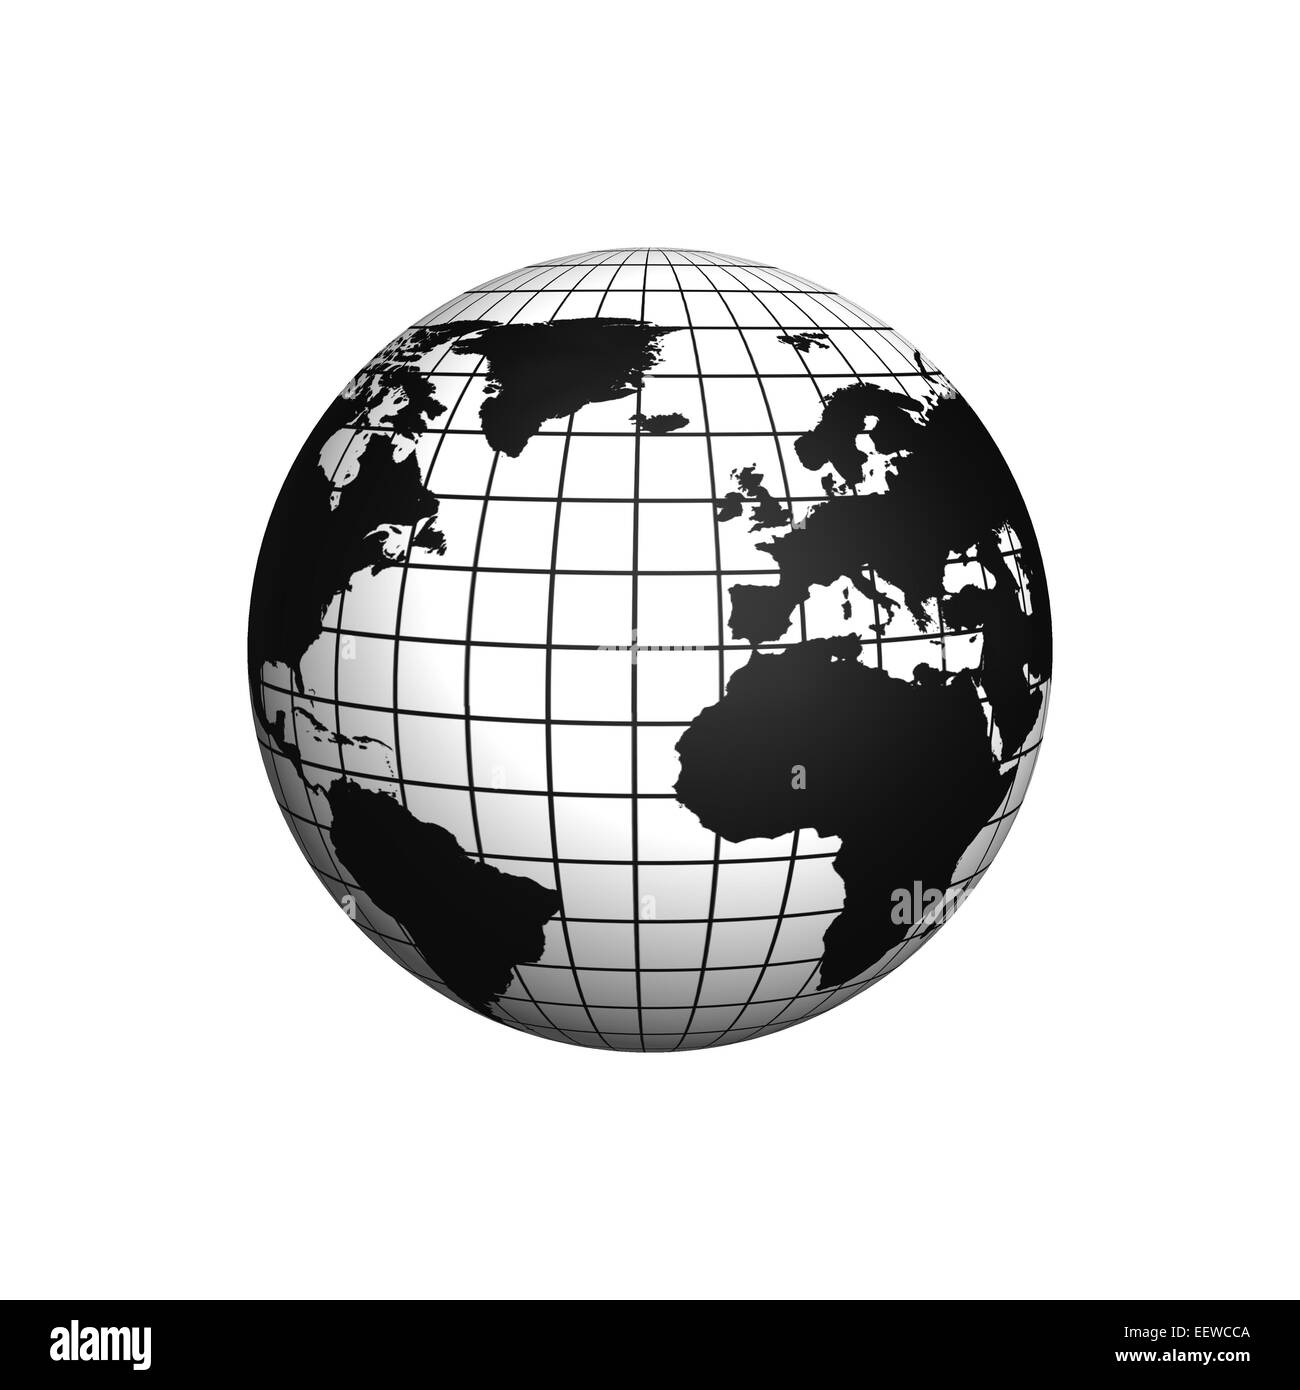 Globe Icon Black and White Stock Photos & Images - Alamy